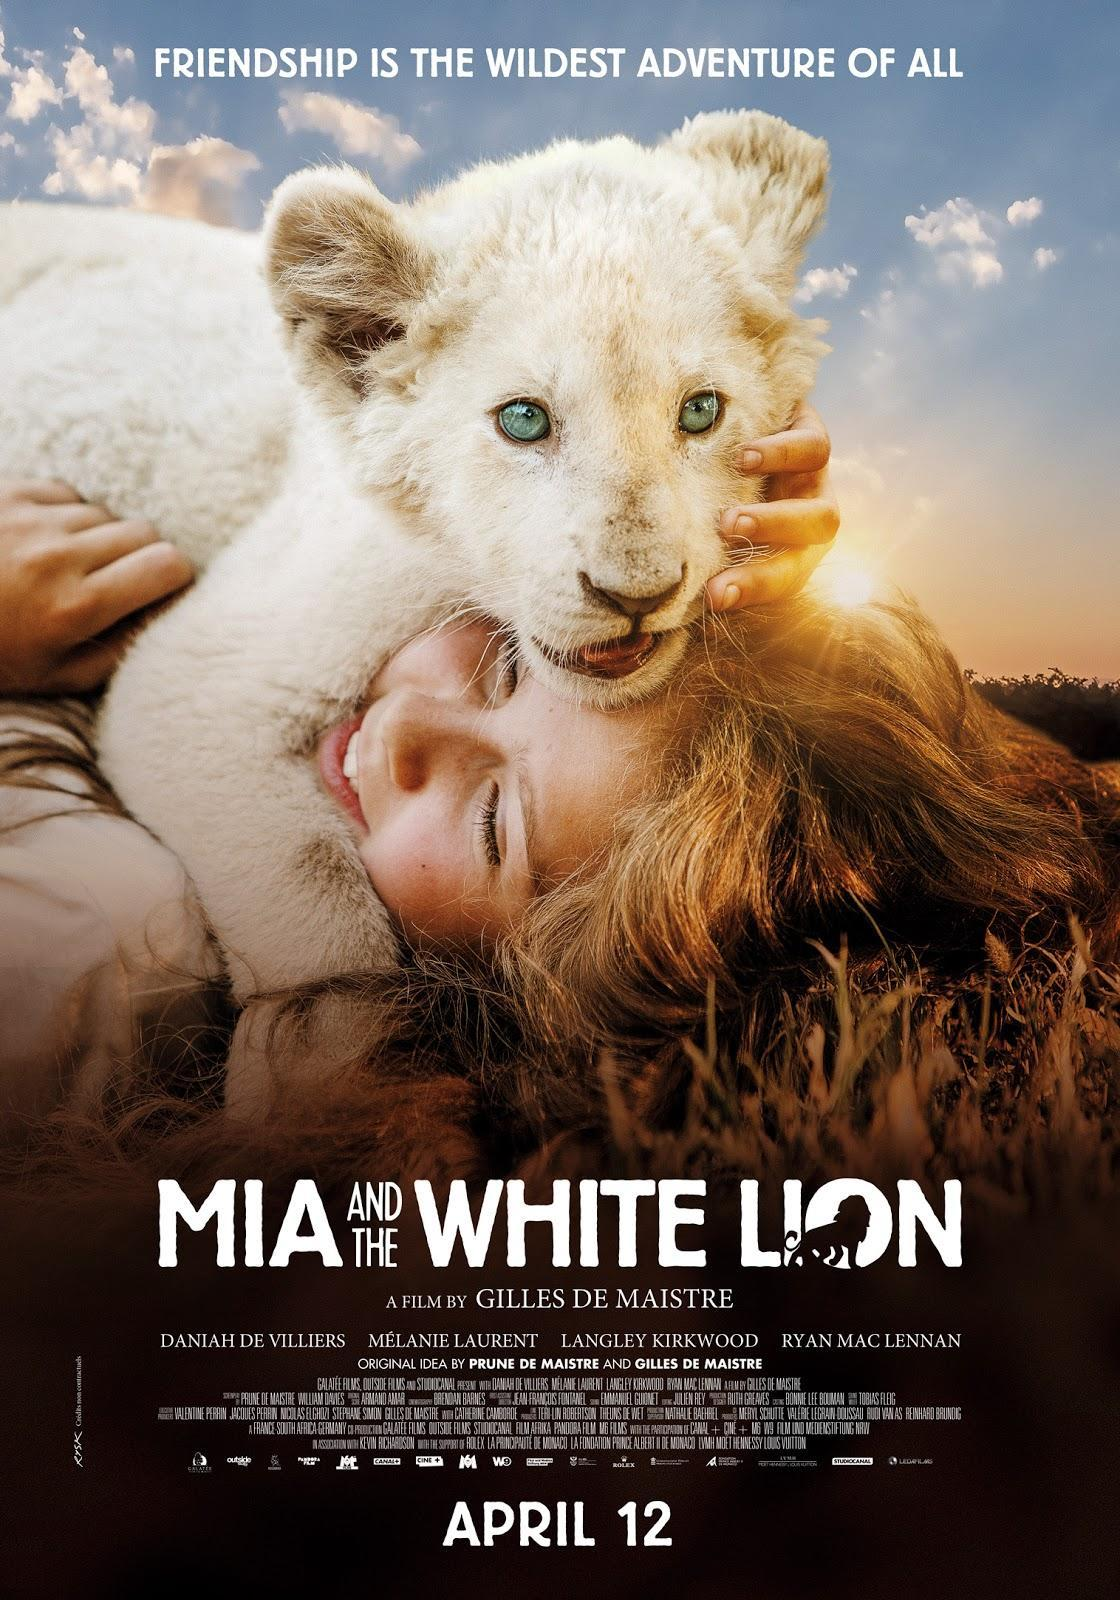 Mia and the White Lion poster art